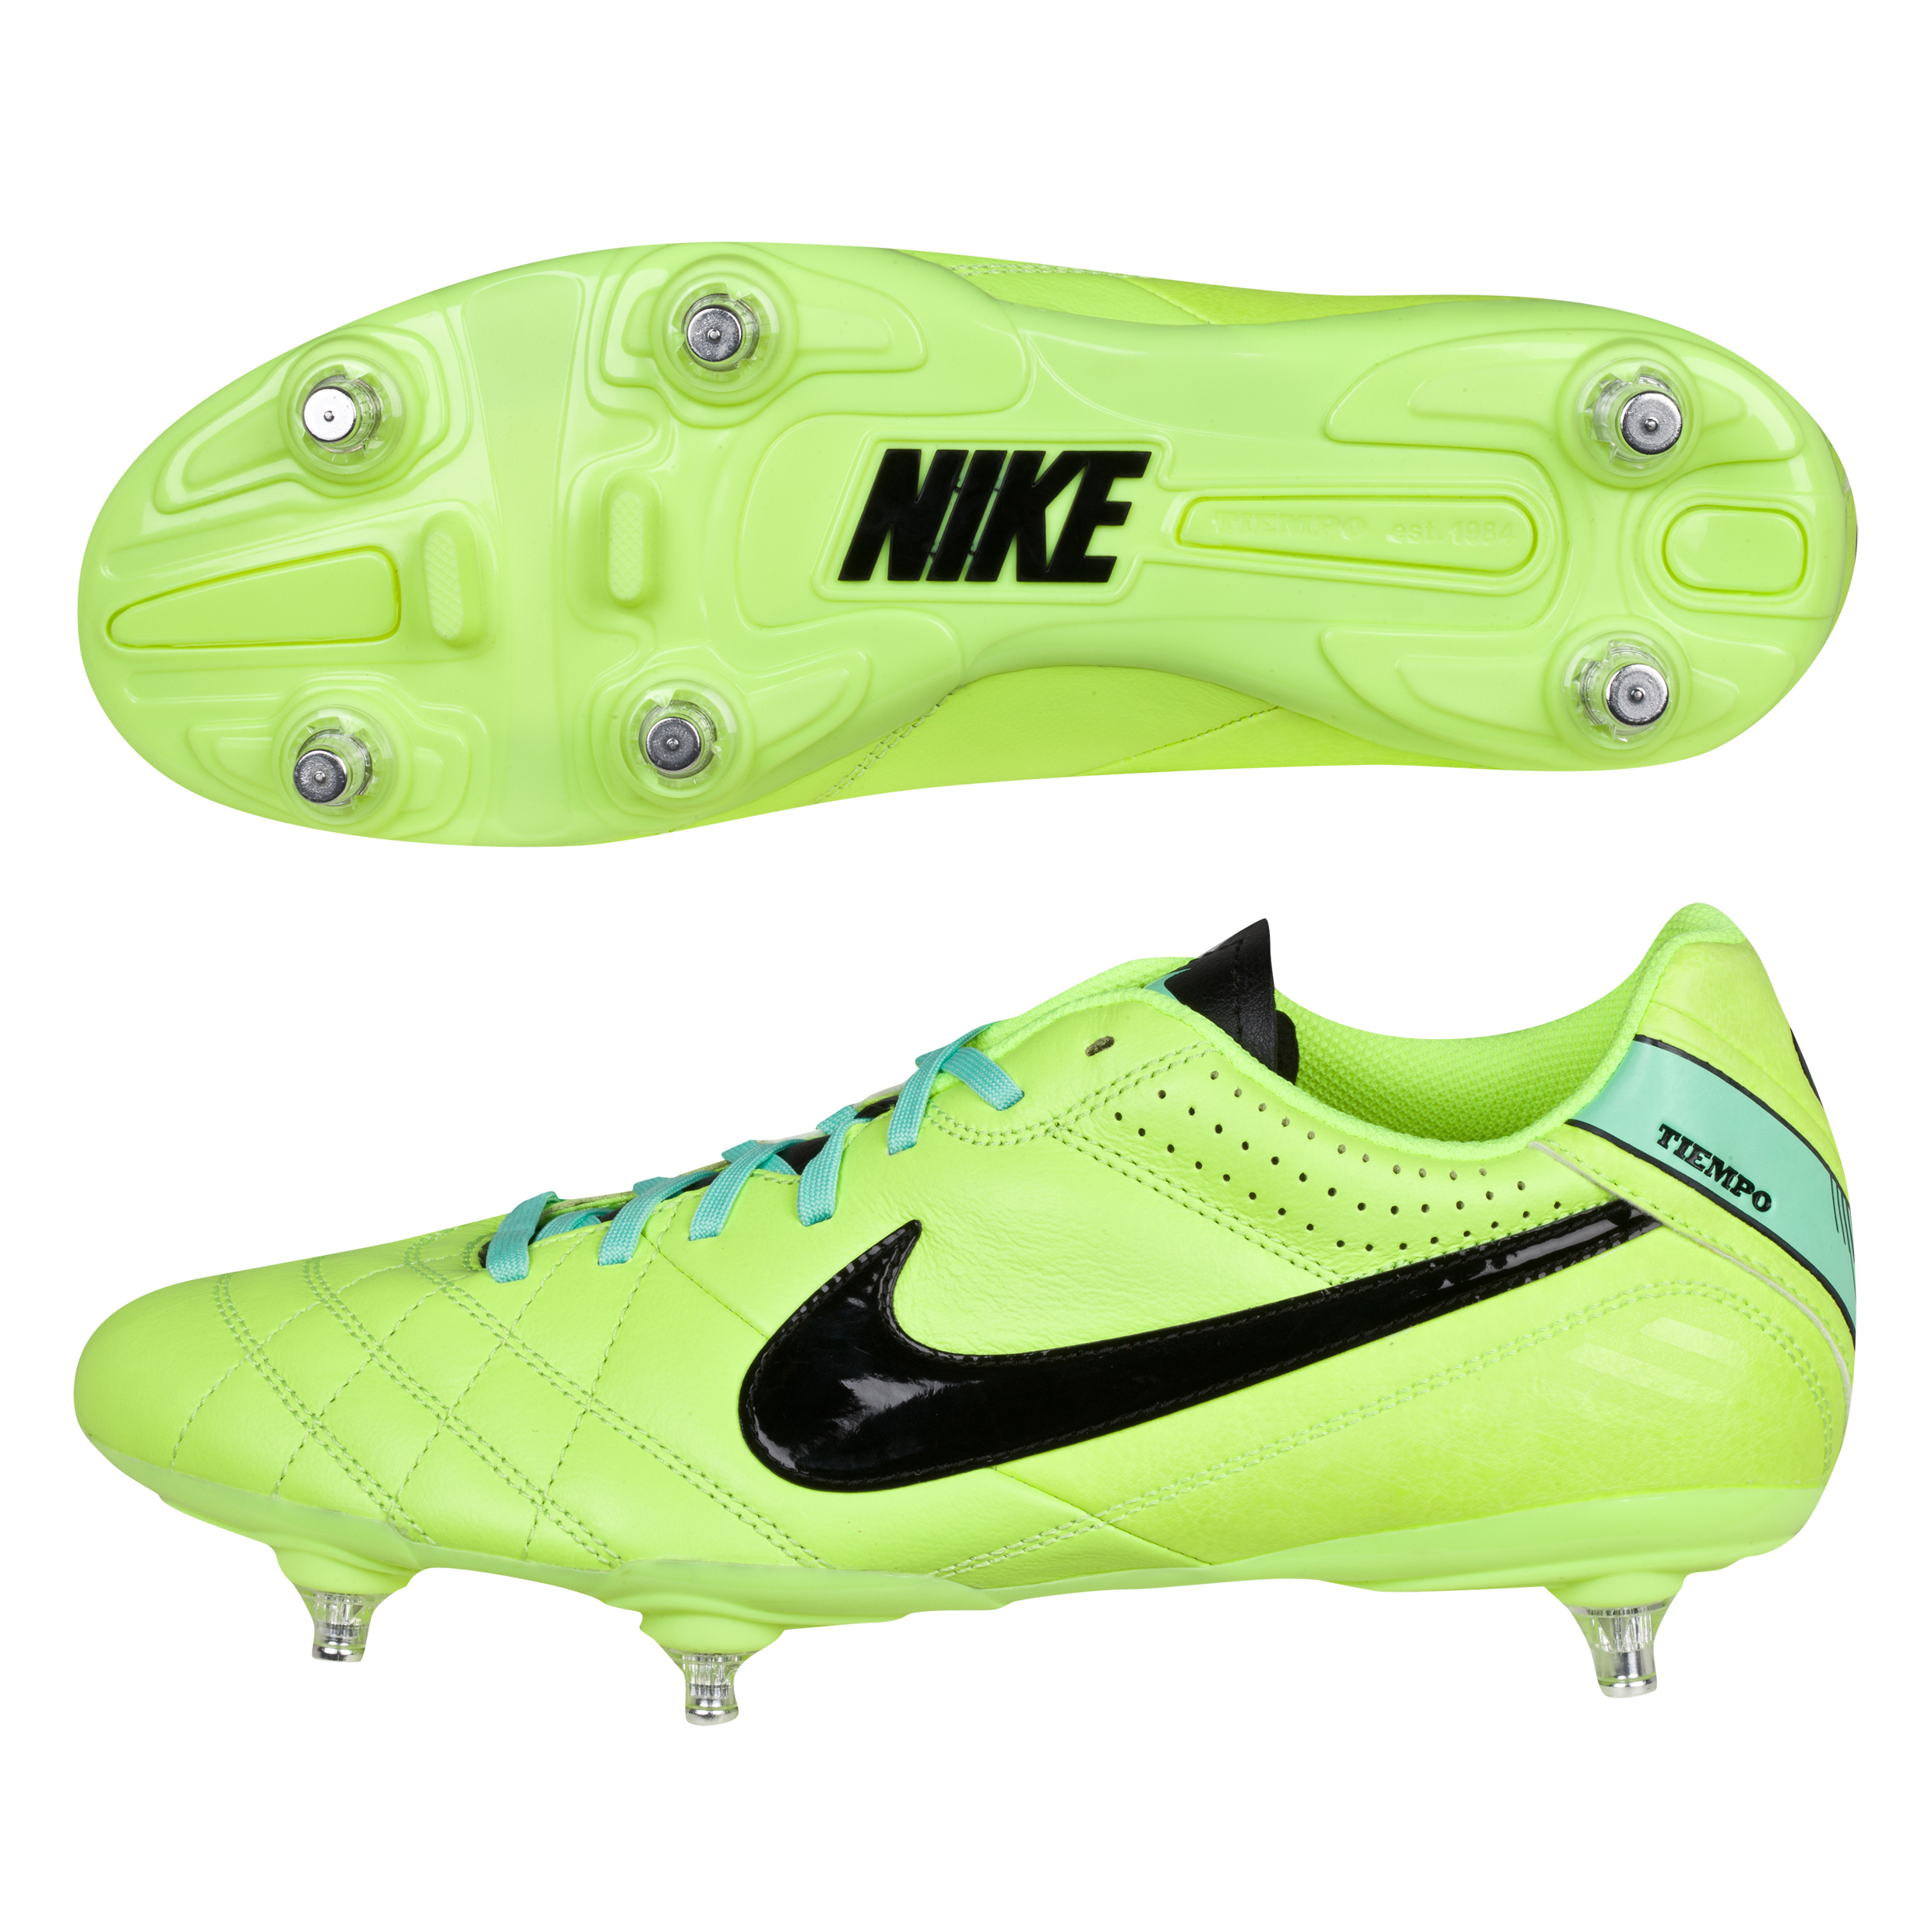 Nike Tiempo Natural Iv Soft Ground Football Boots -Volt/Black/Green Glow Lt Green